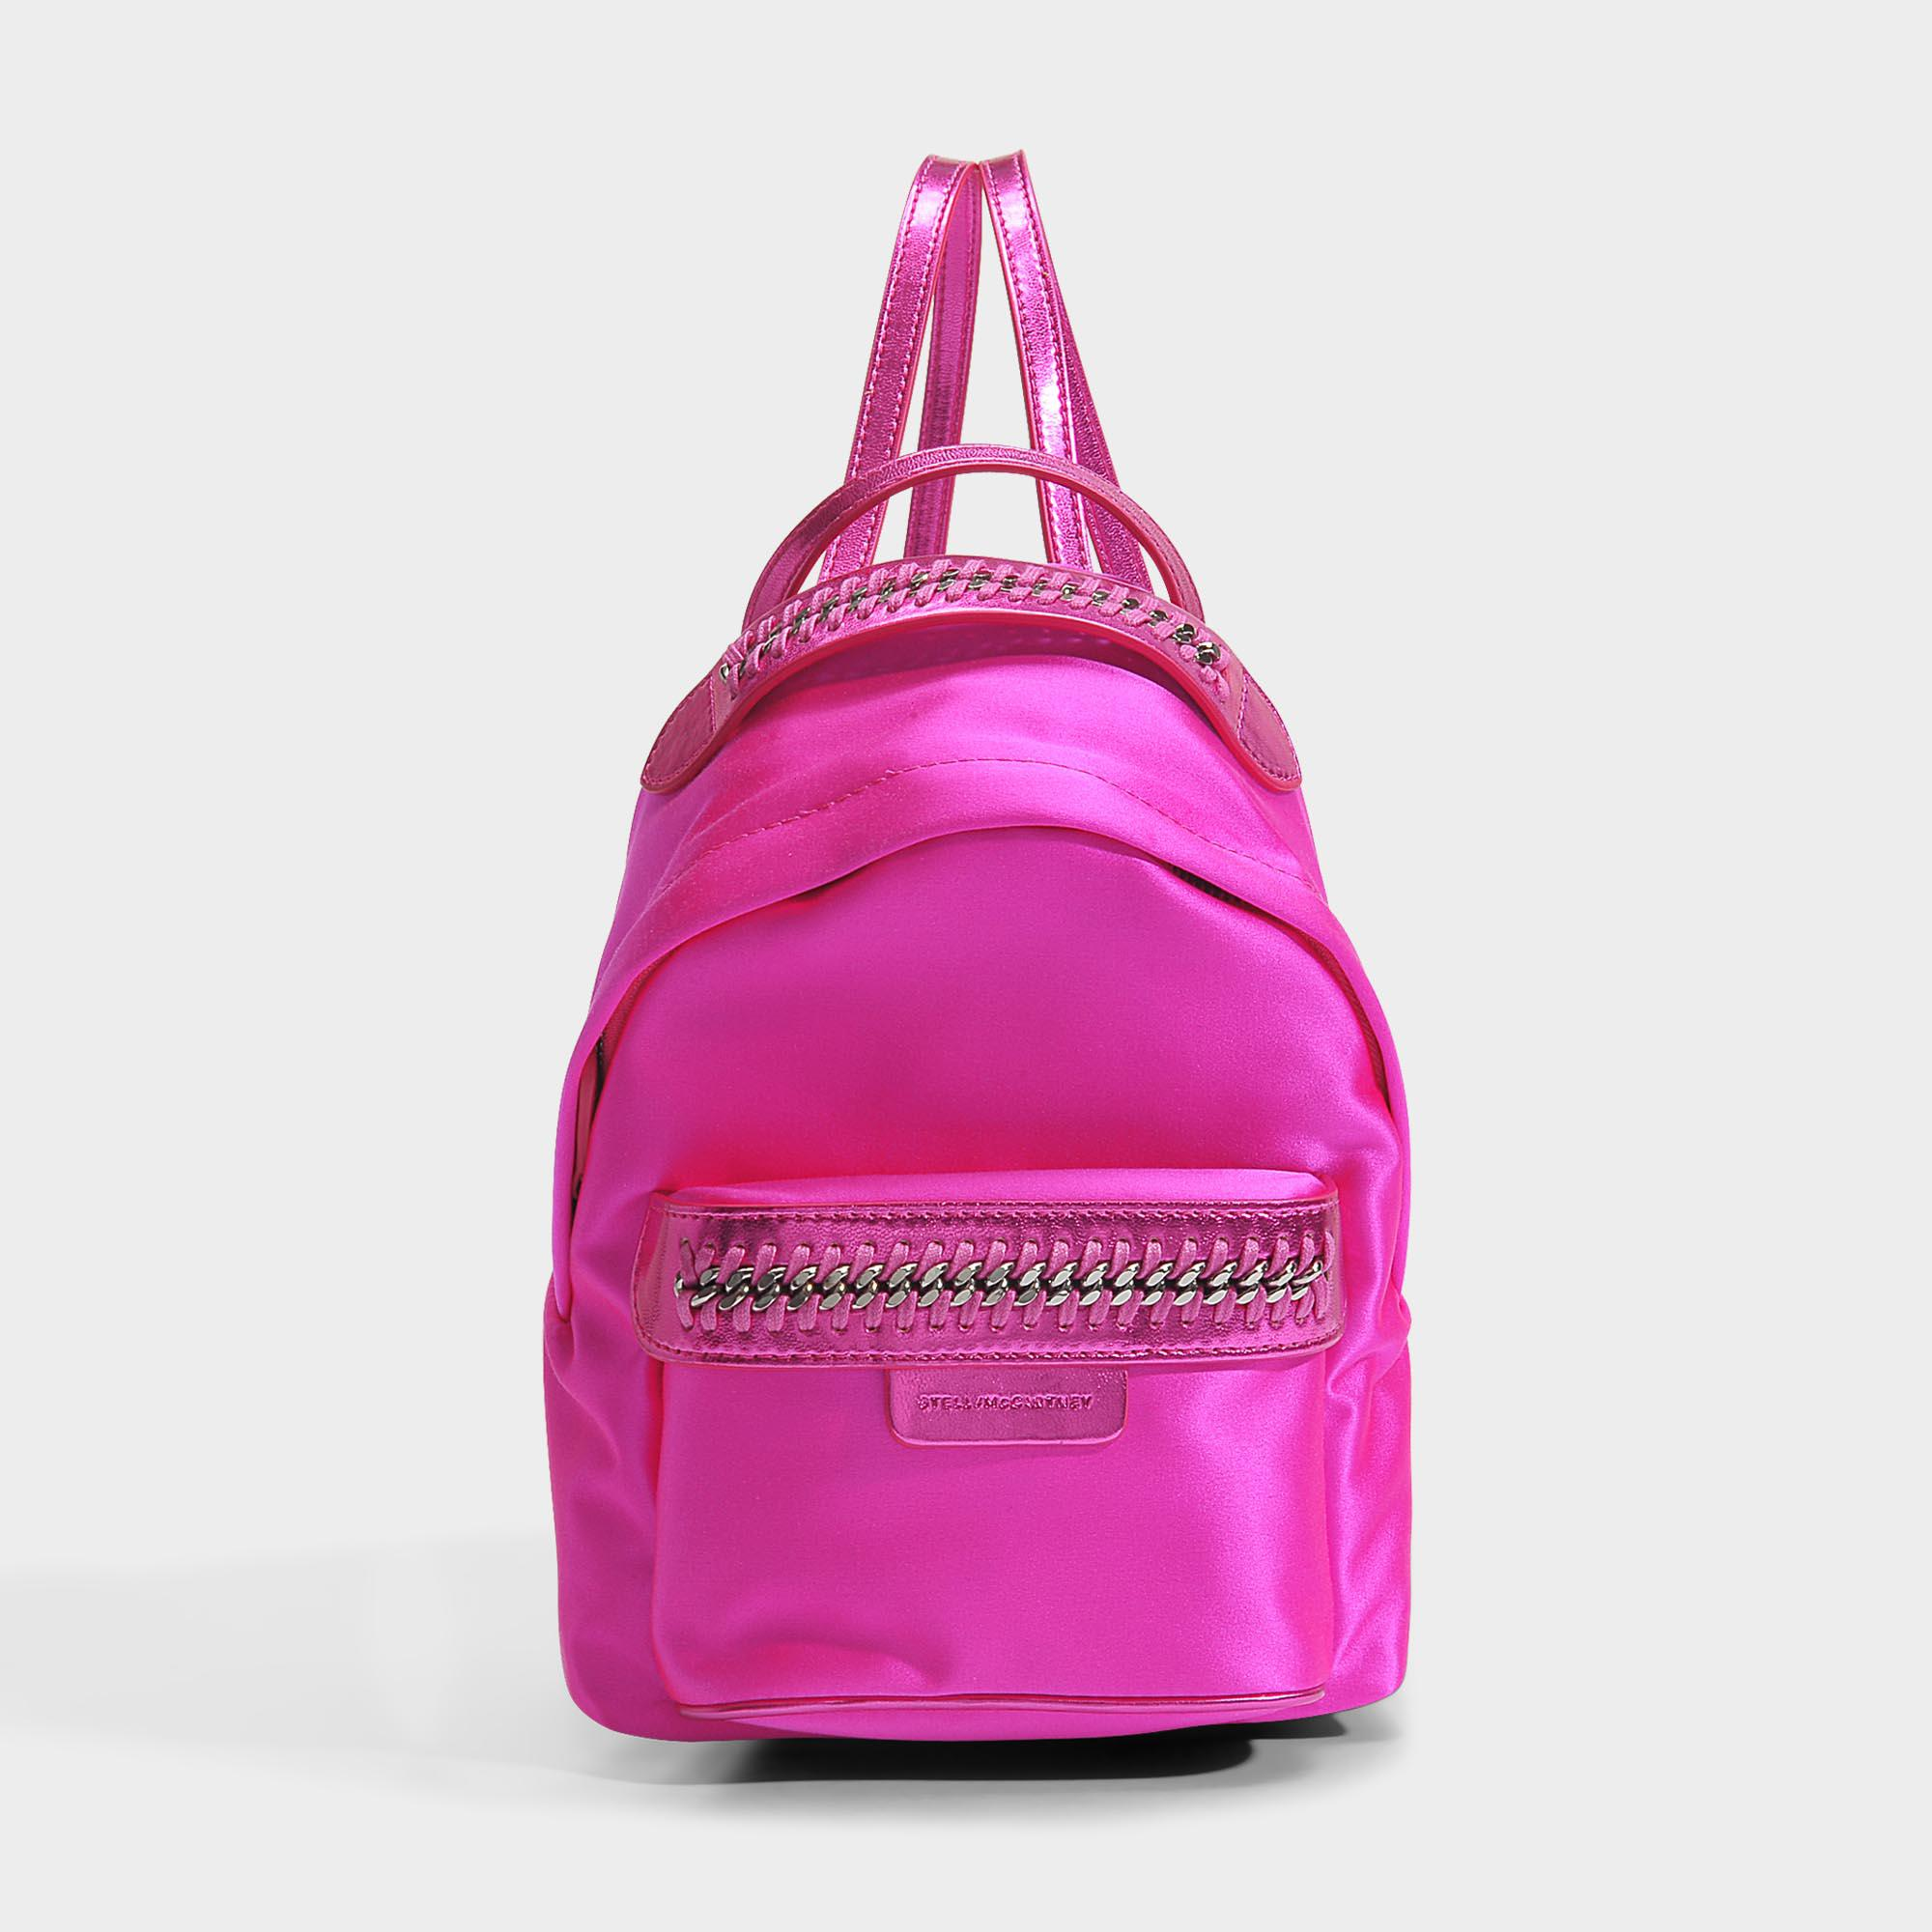 Satin Falabella Go Mini Backpack in Bright Fuchsia Eco Fabric Stella McCartney